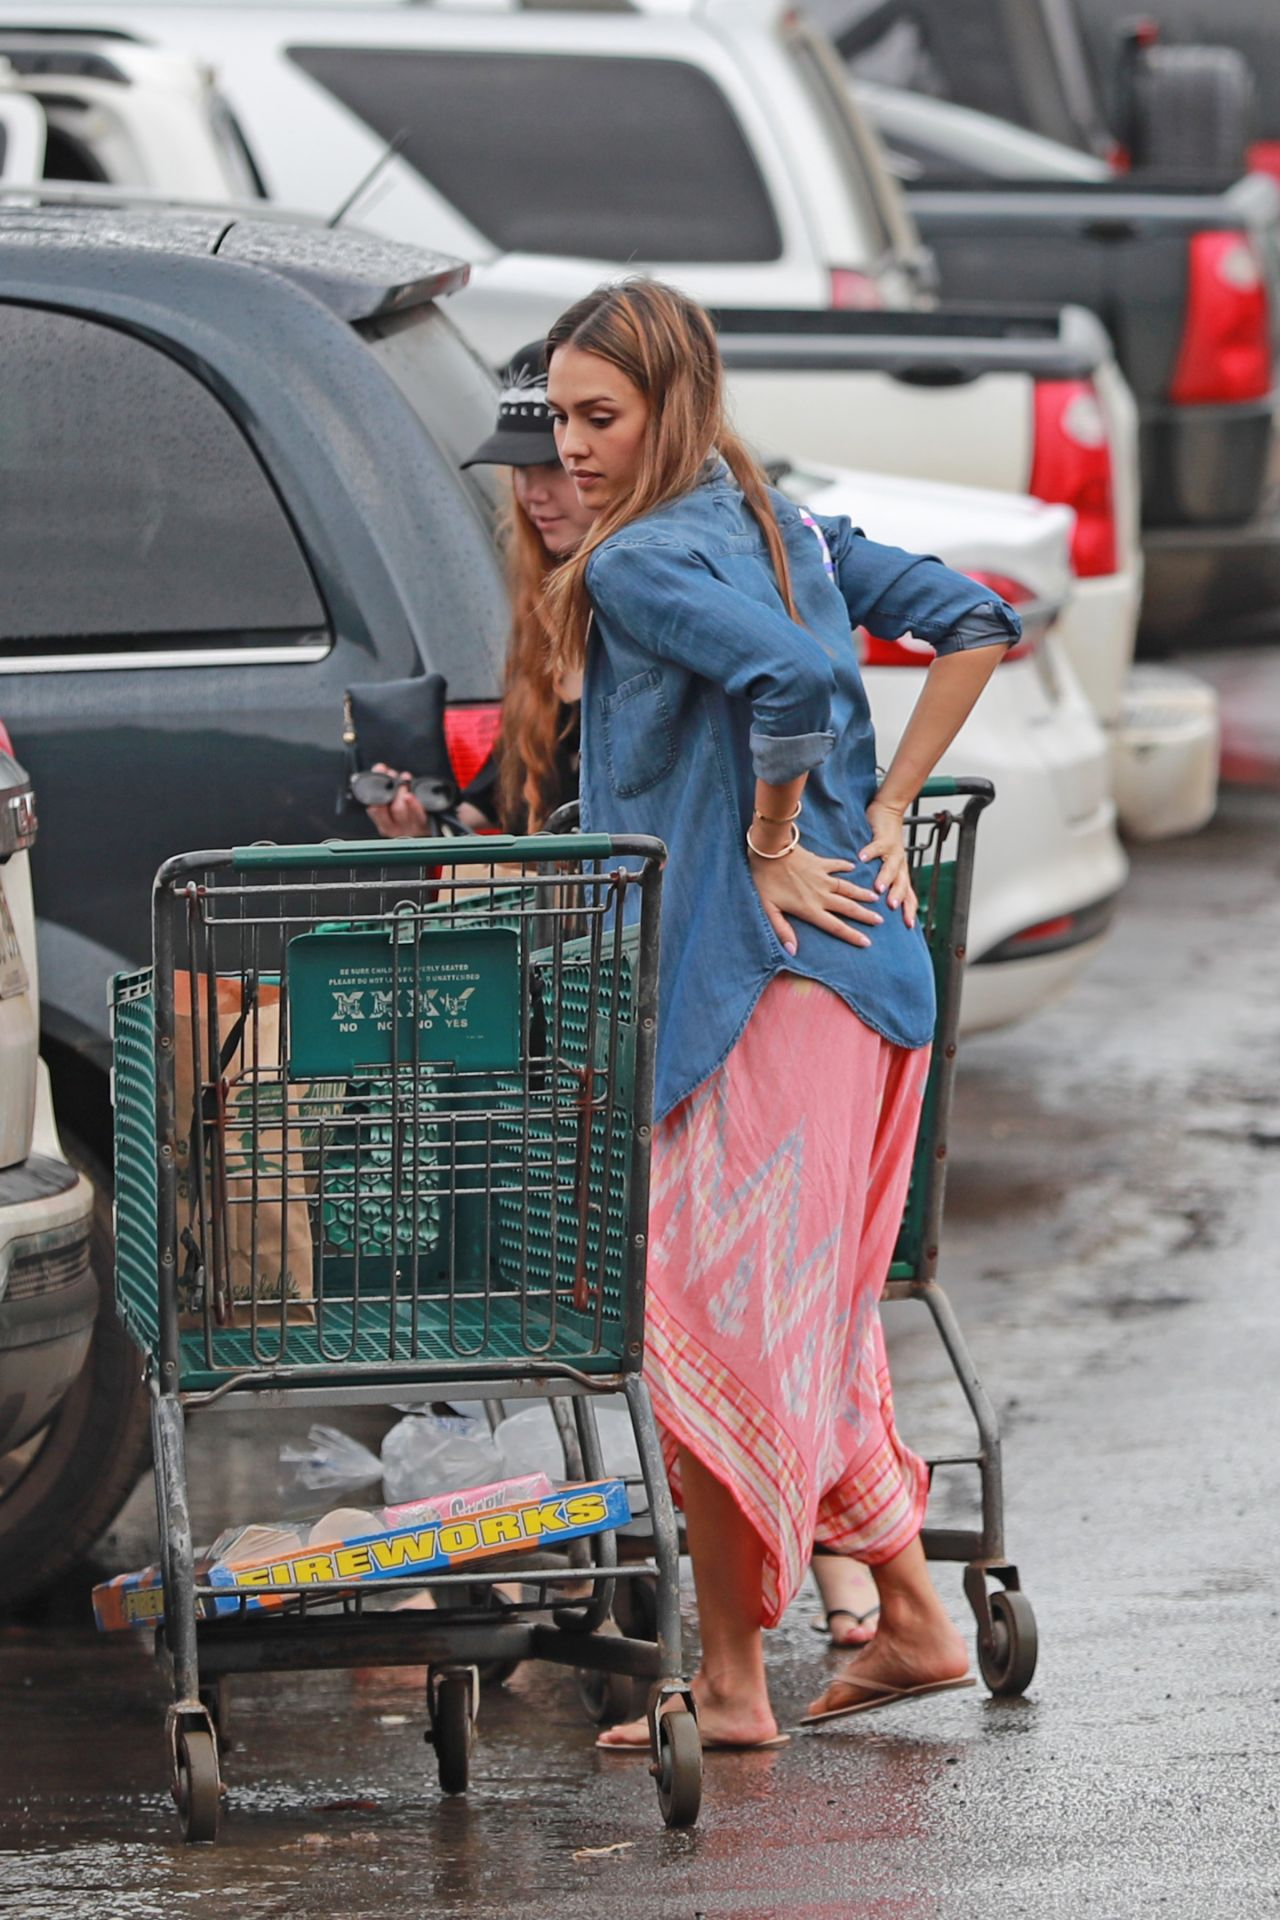 http://celebmafia.com/wp-content/uploads/2016/12/jessica-alba-gets-ready-for-new-years-eve-buying-fire-crackers-in-hawaii-12-29-2016-3.jpg